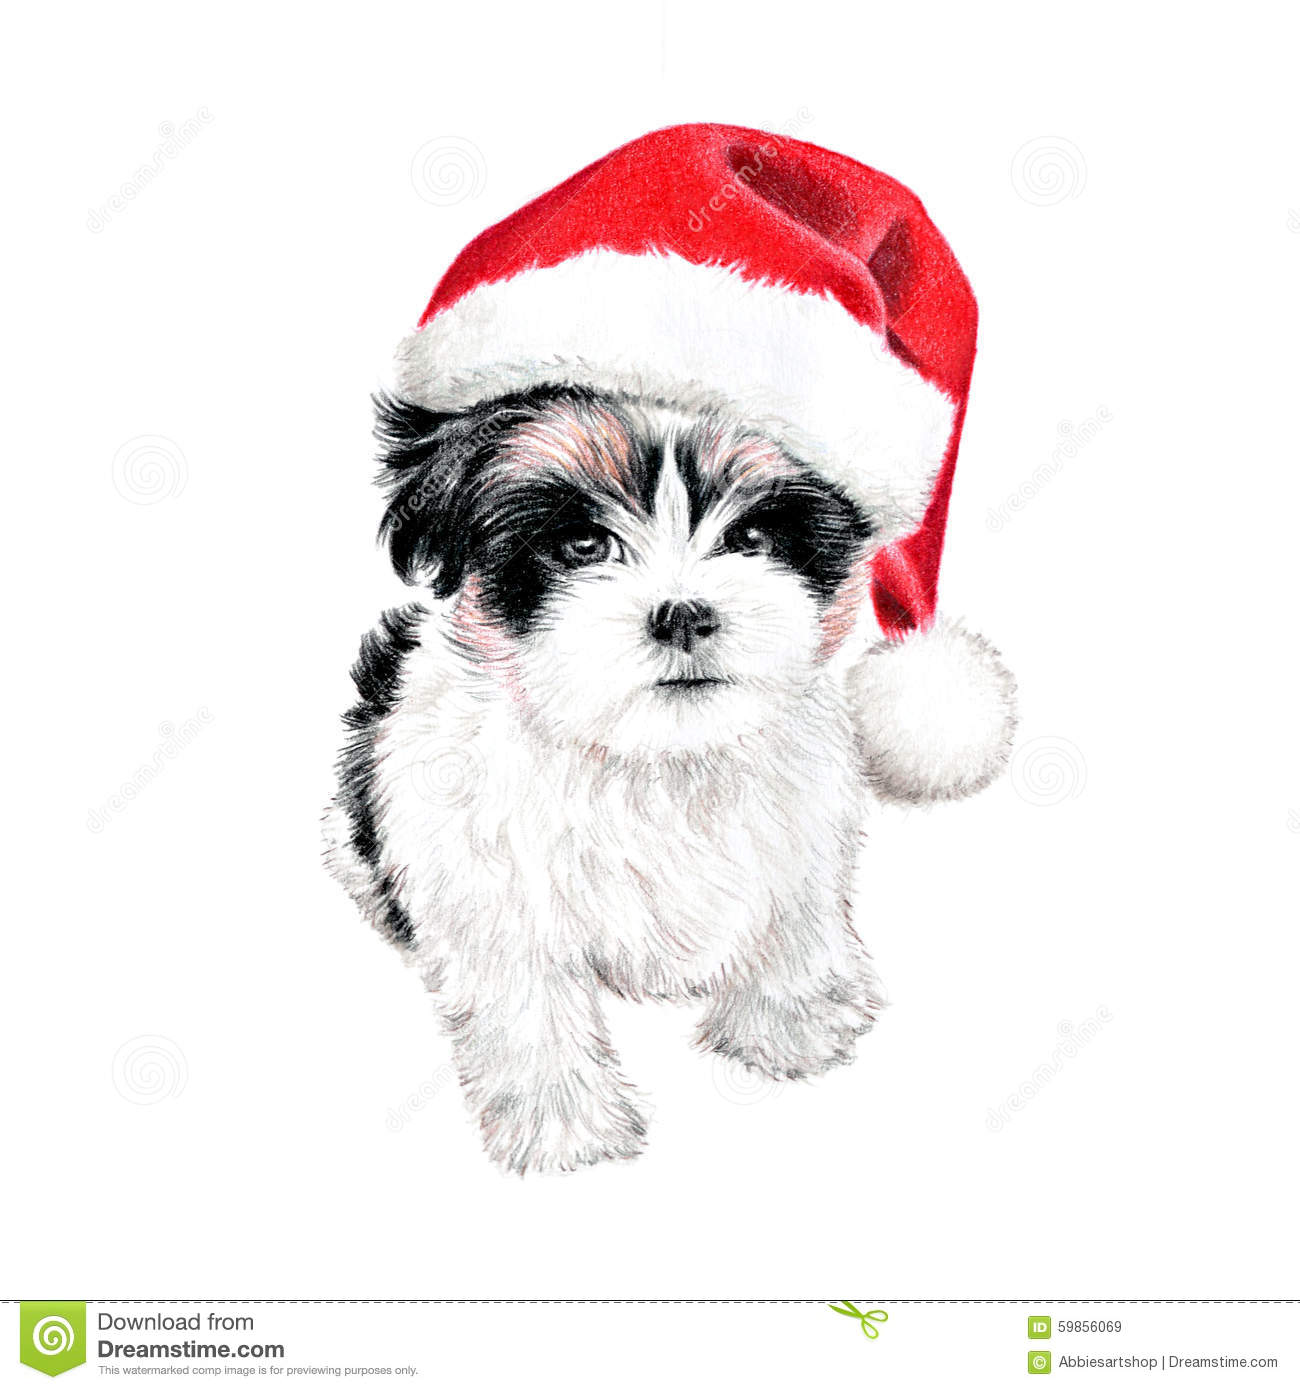 Cute Christmas Puppy Dog With Santa Hat Illustration. Hand Drawn.